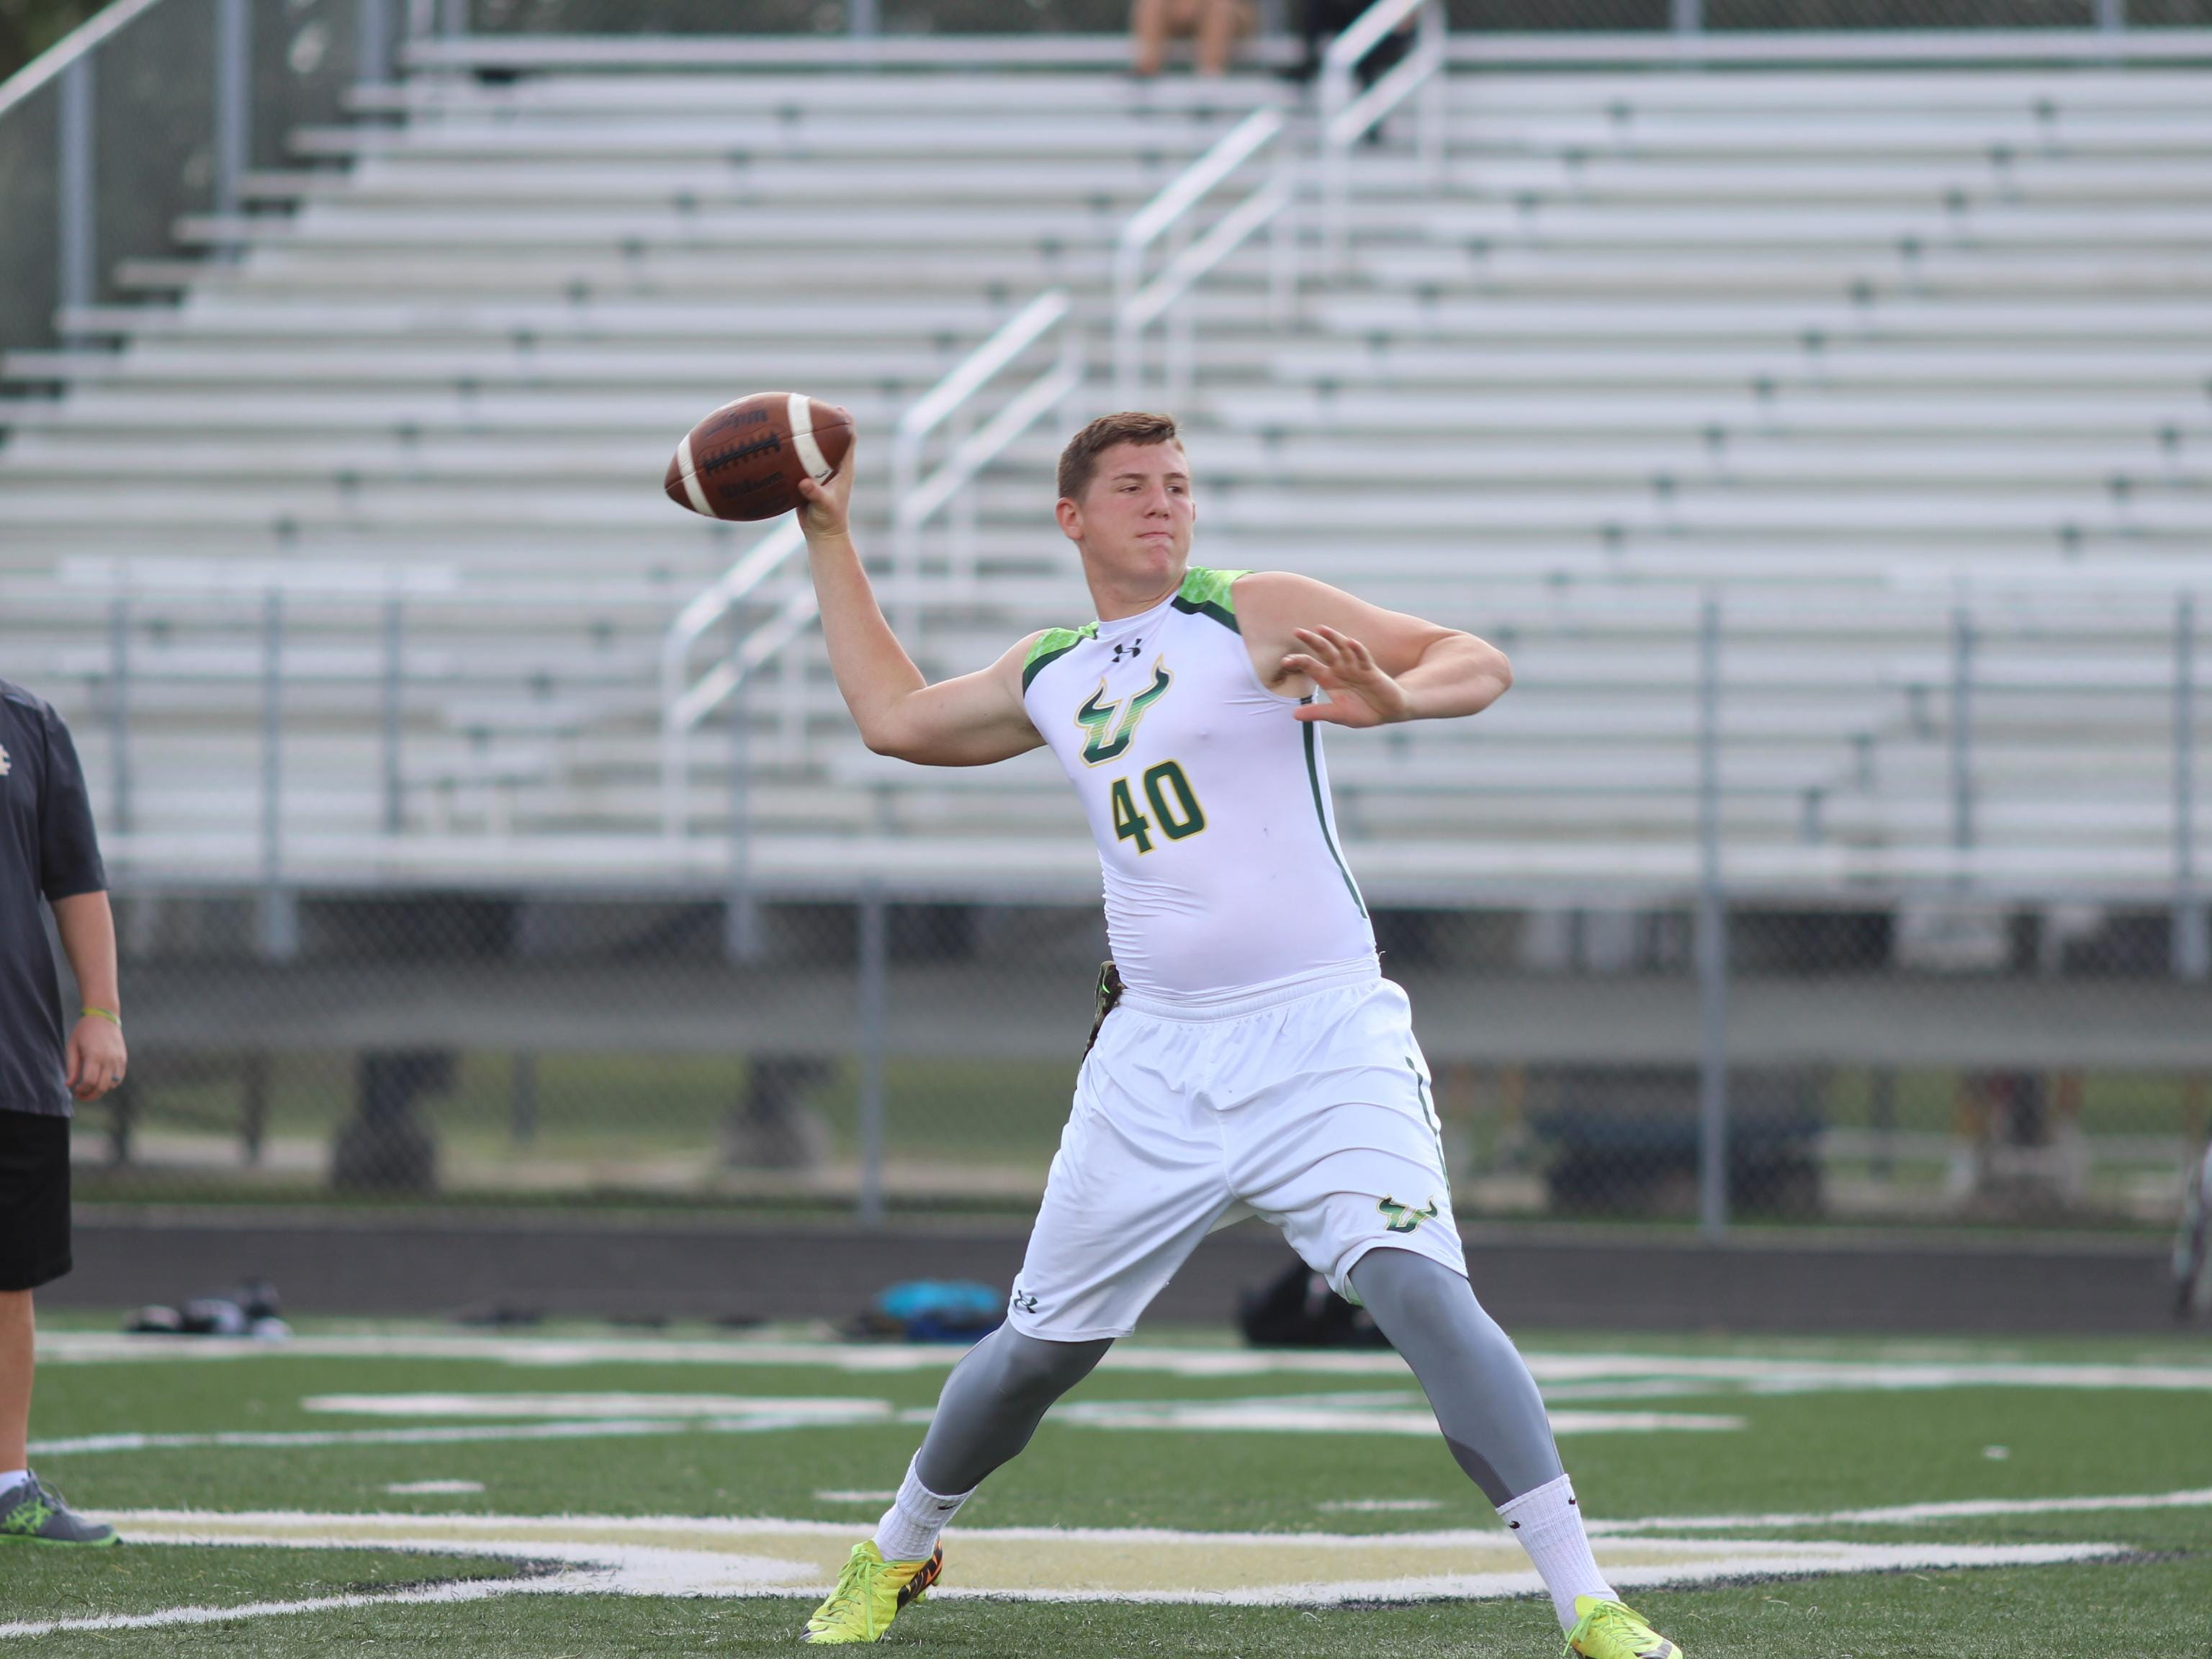 Island Coast quarterback Kory Curtis prepares to throw a pass during a 7-on-7 game at Golden Gate High School.